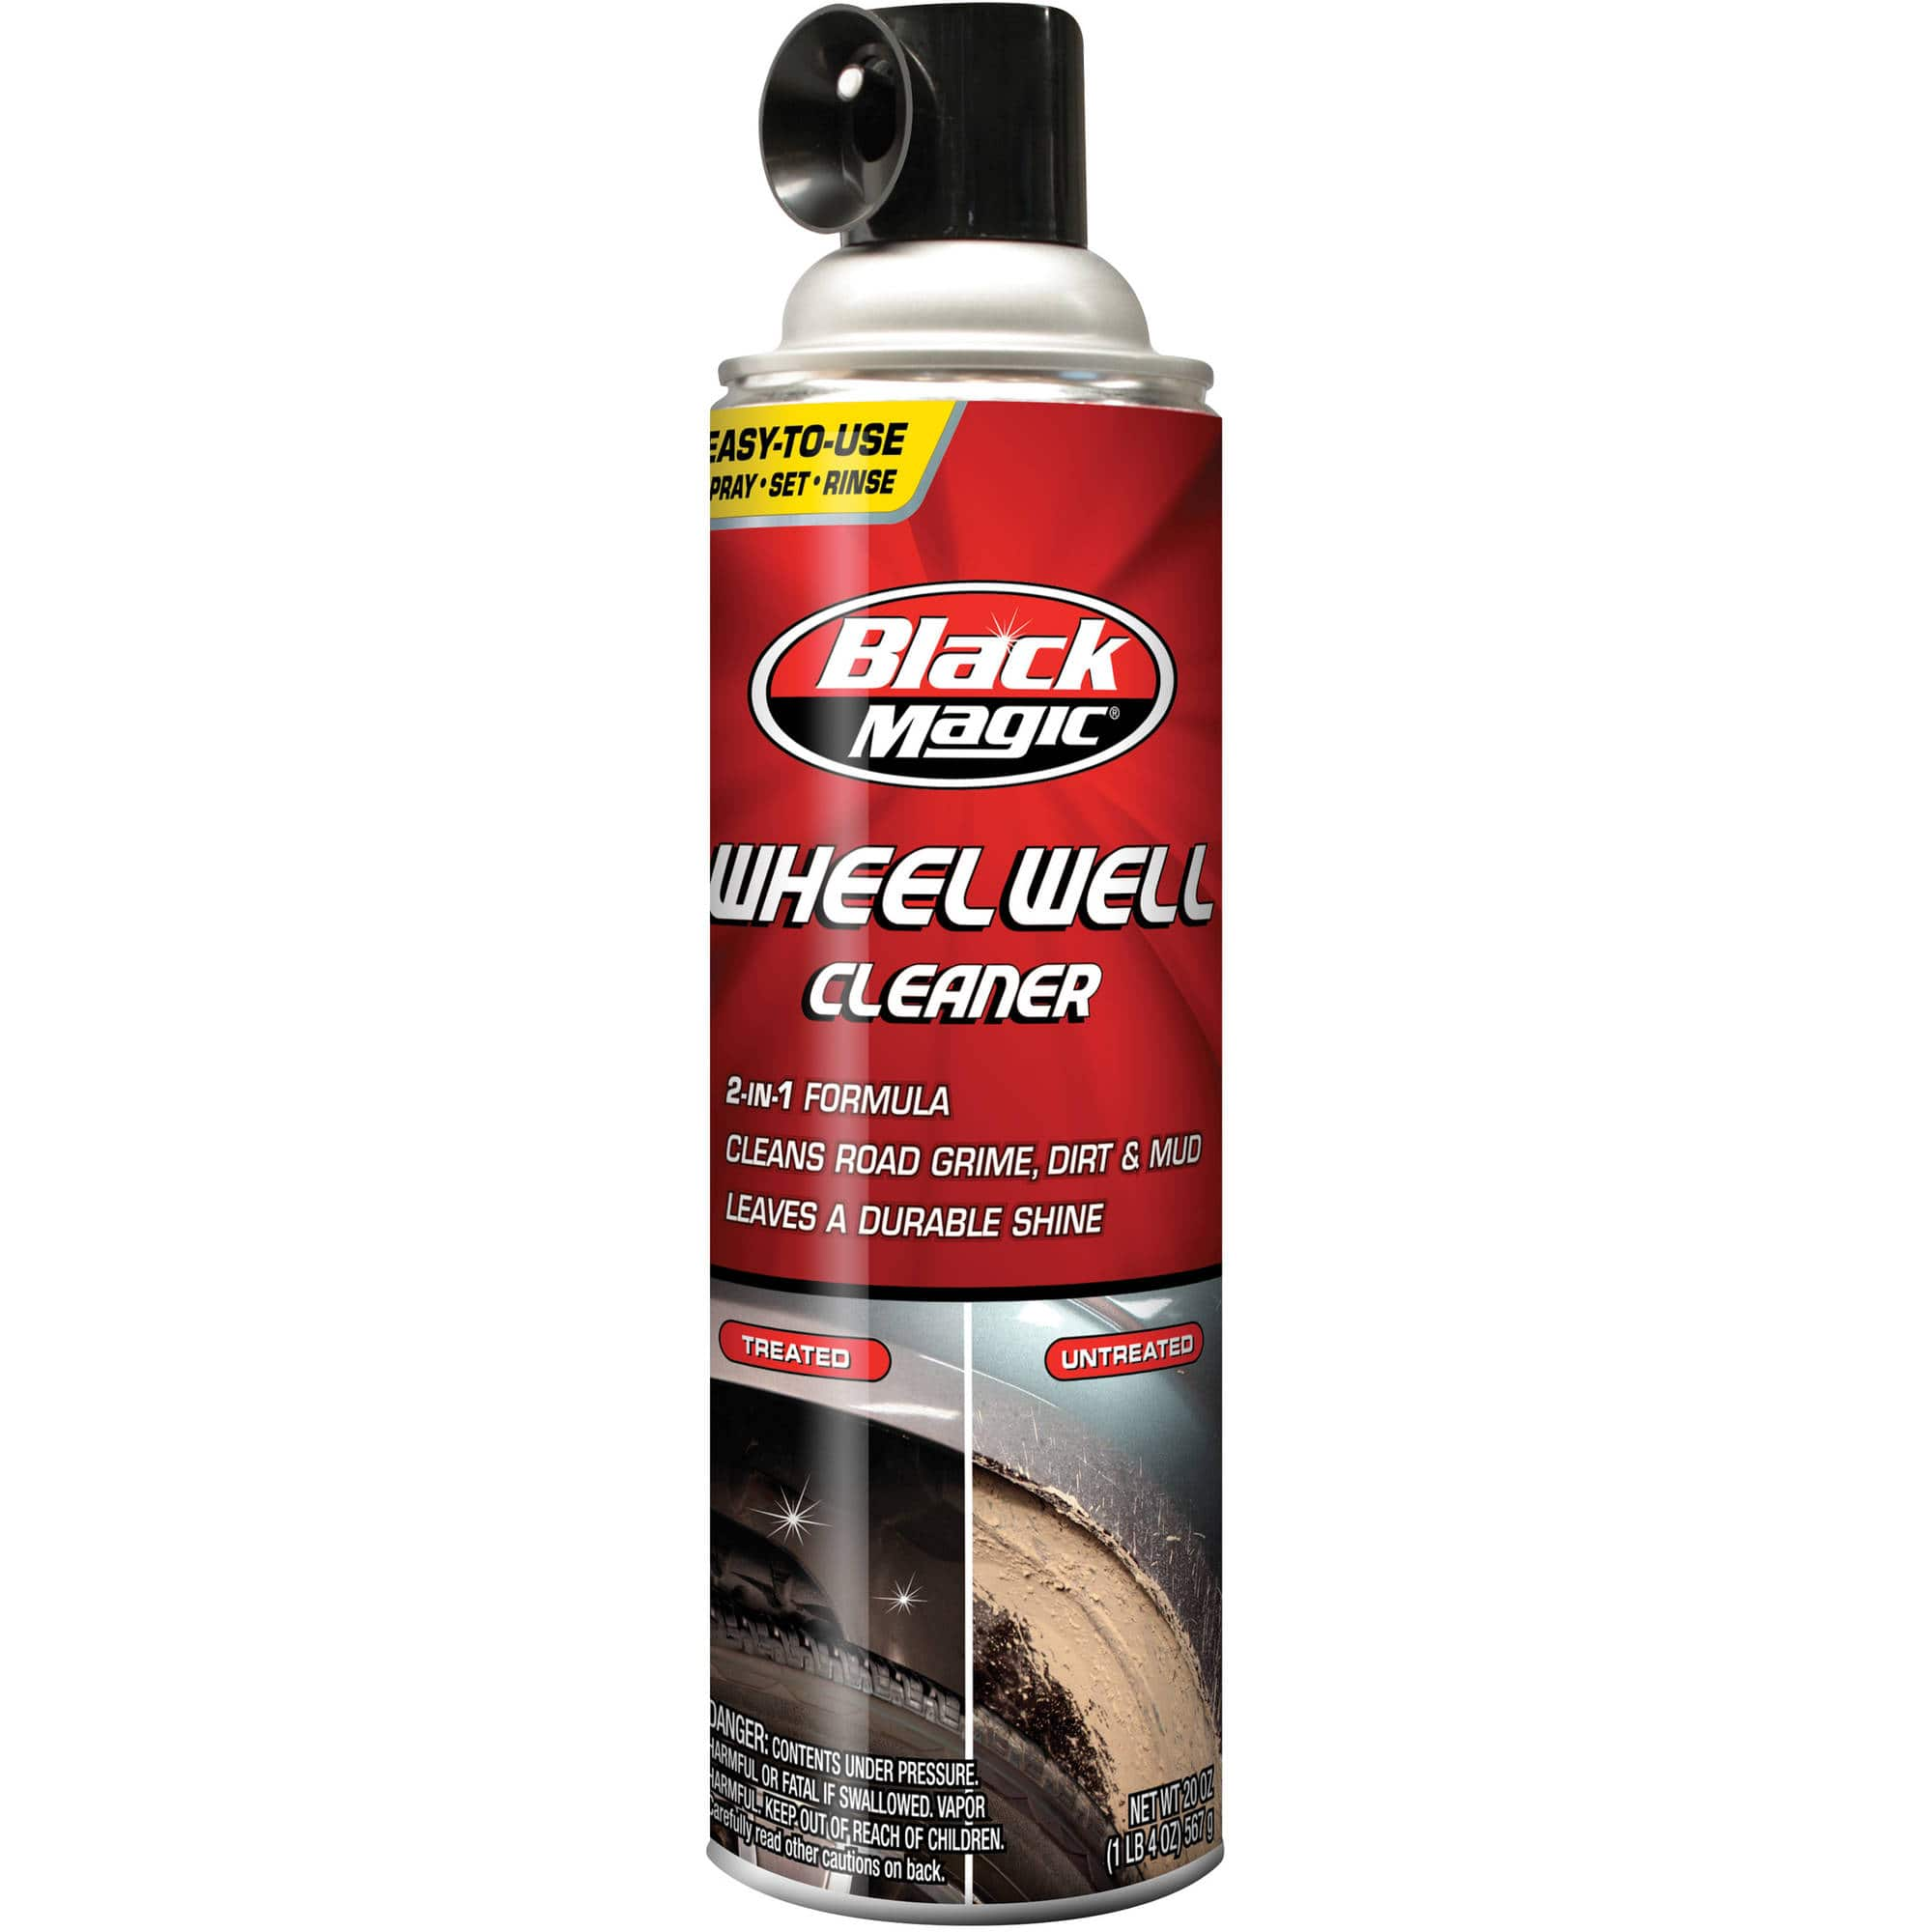 Black Magic 16 Oz. Wheel Well Cleaner for Free After Rebate @ AutoZone B&M - Valid 06/13/16 to 06/28/16